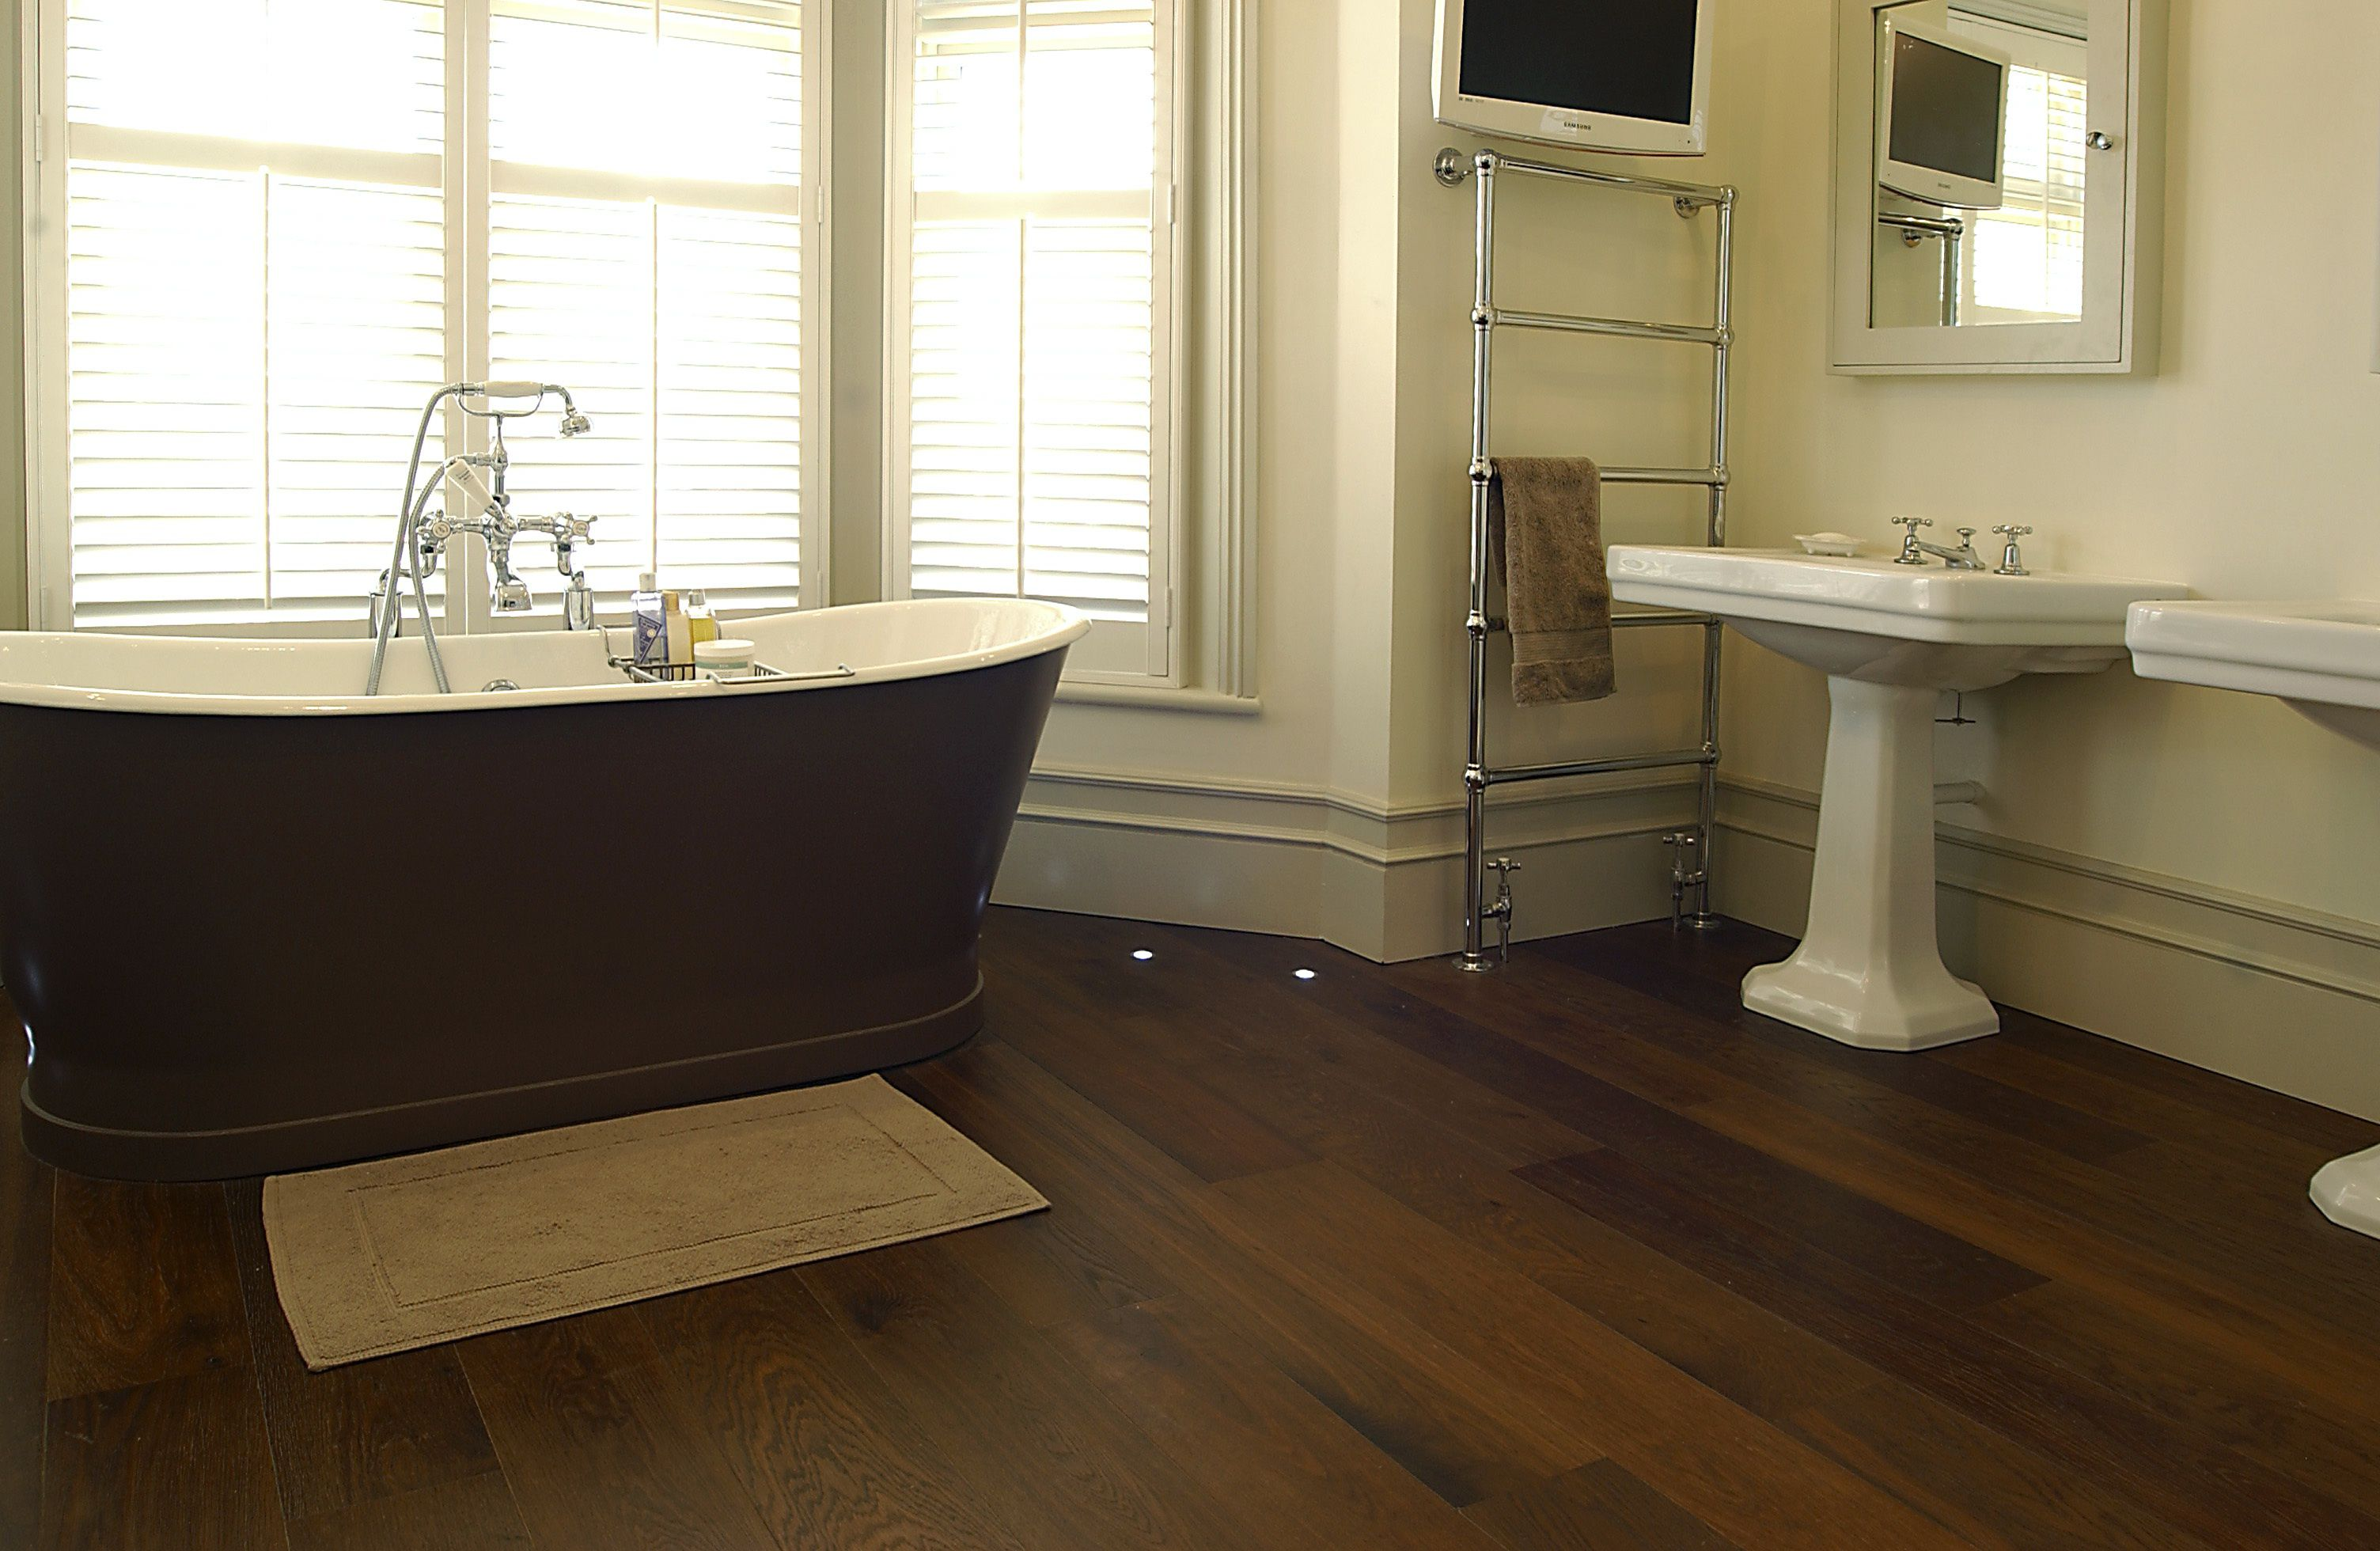 Wooden Flooring Option With Large Bathroom Design